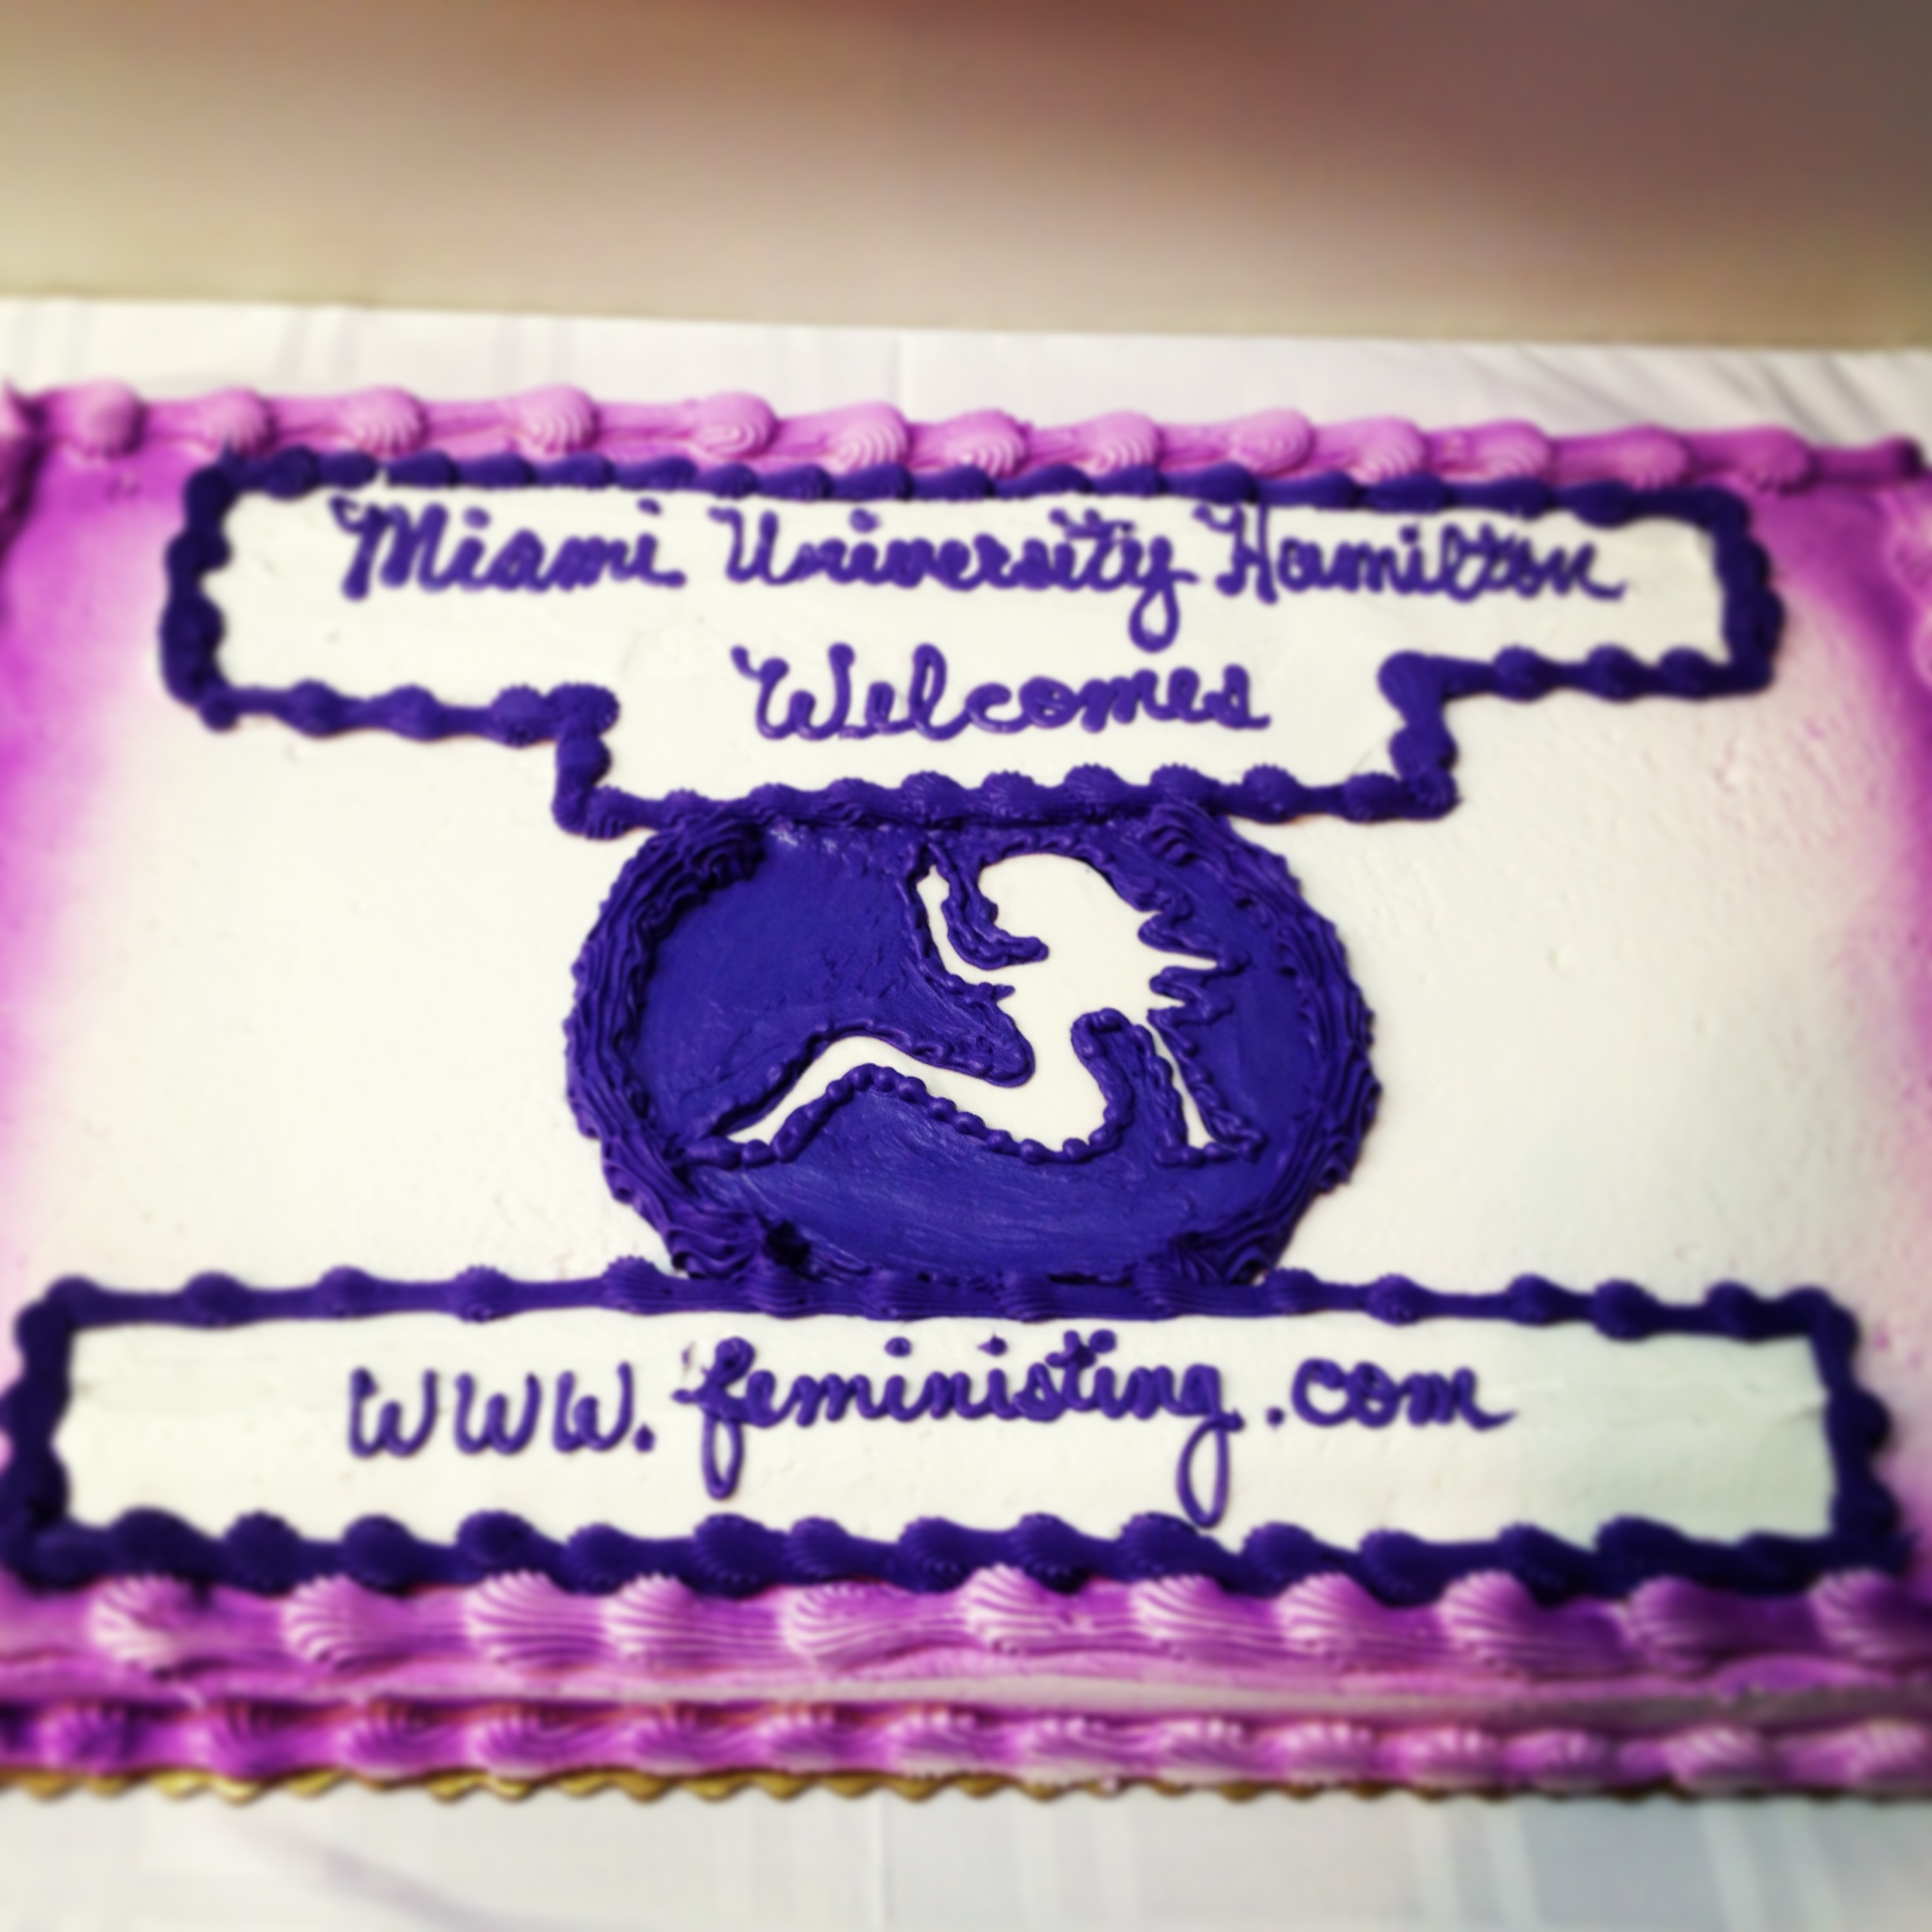 Purple cake with the Feministing mudflap girl and website url